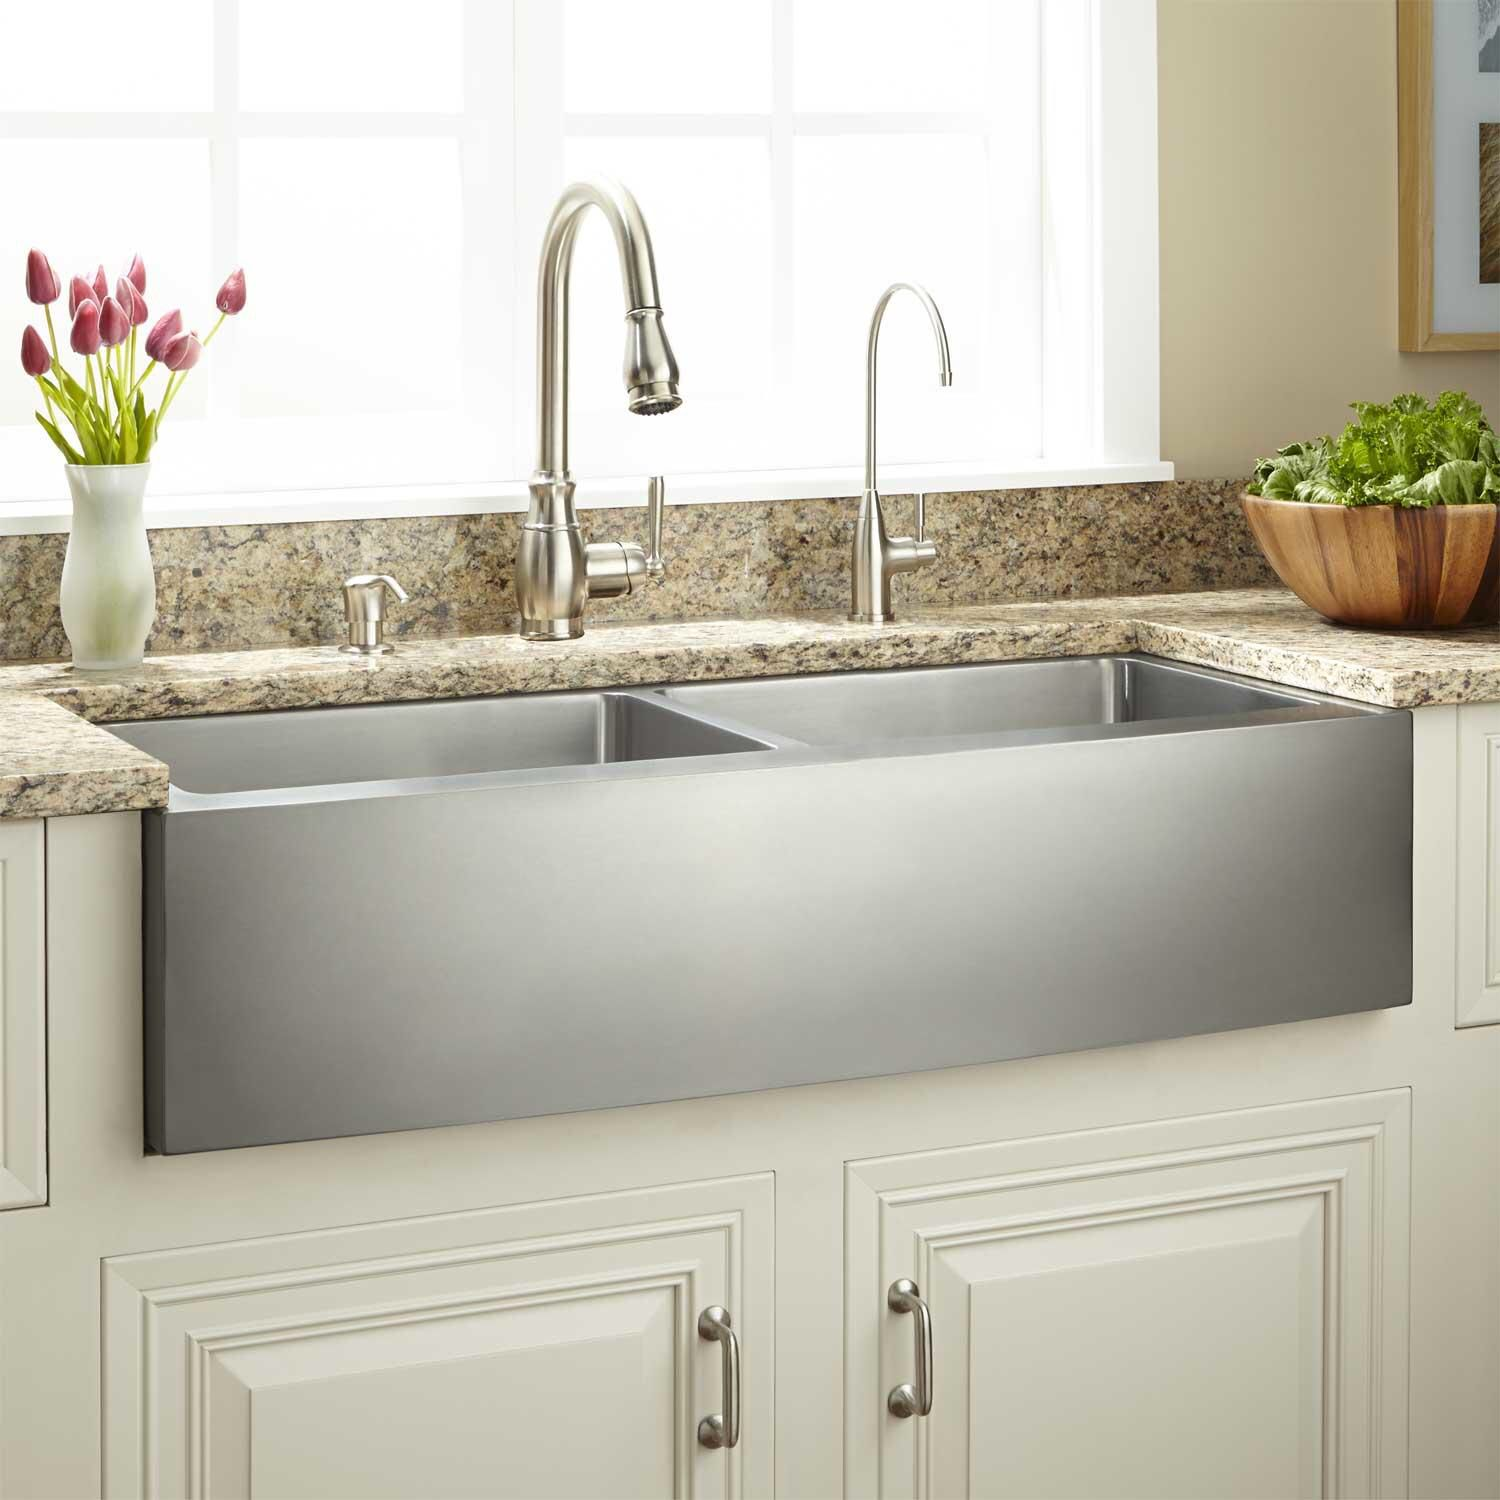 Pin by Ruth Parrish on Kitchens Farmhouse sink kitchen